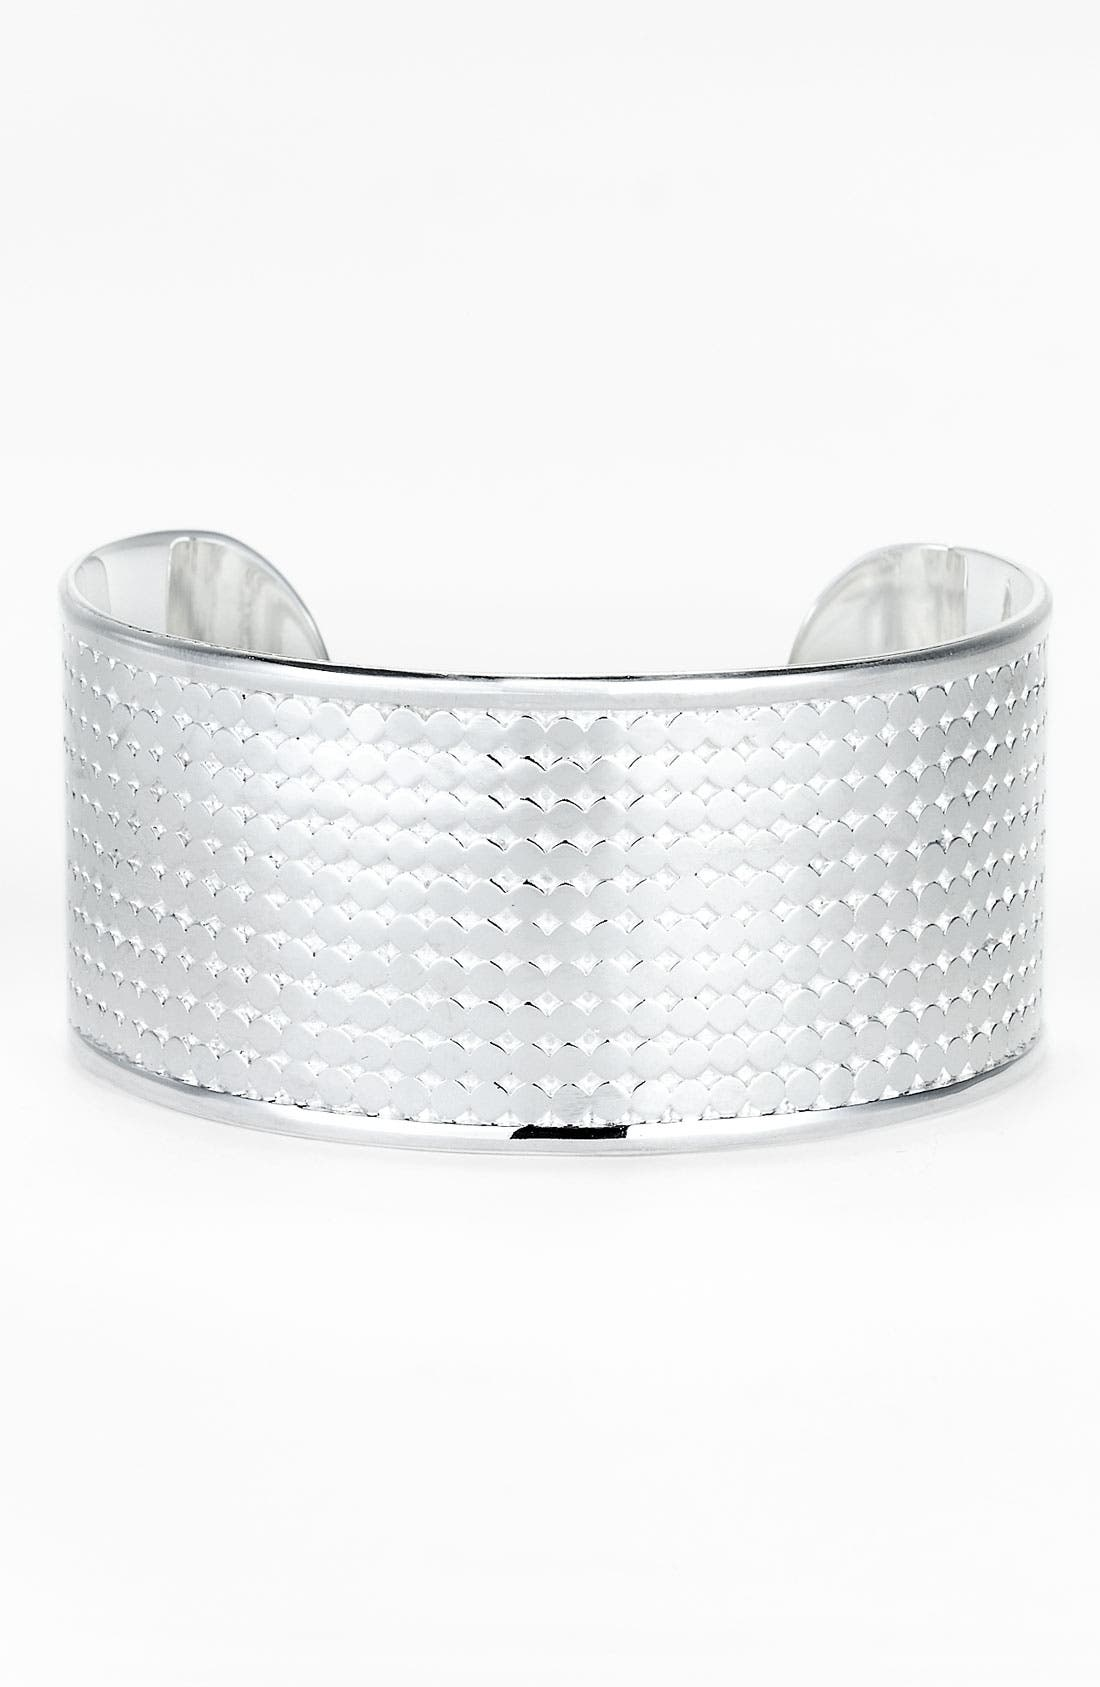 Alternate Image 1 Selected - Anna Beck 'Bali' Medium Cuff